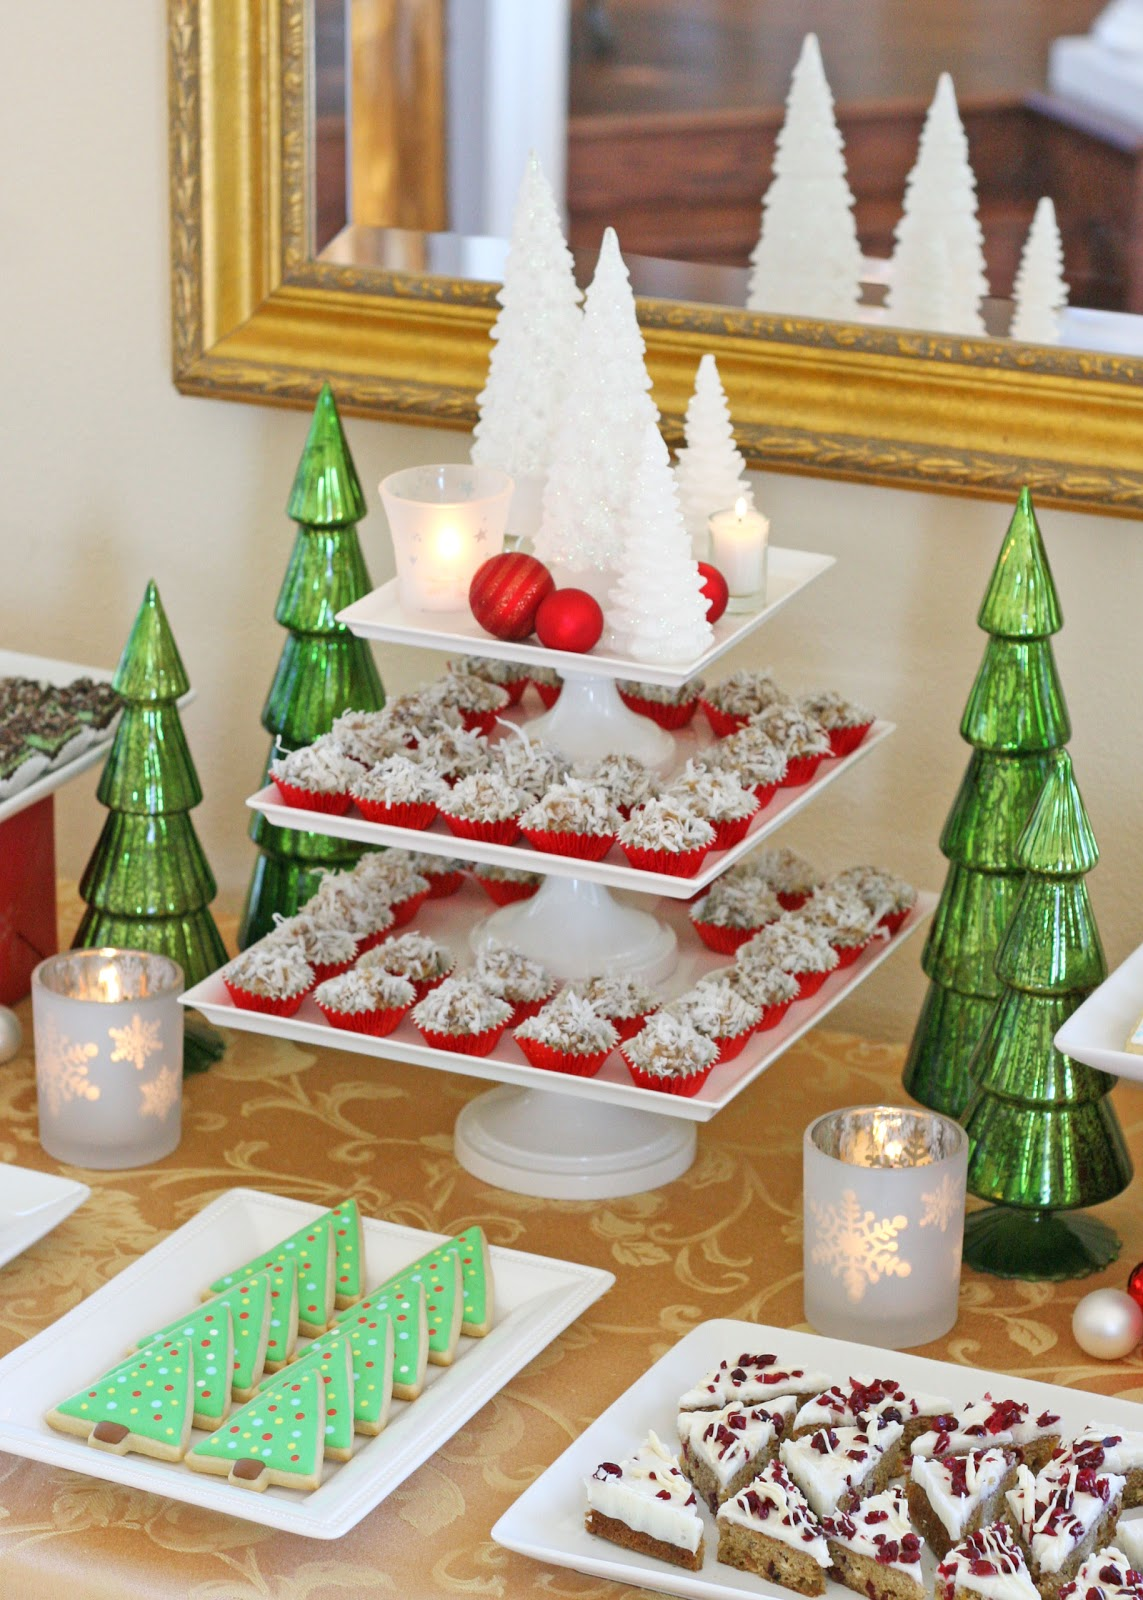 Christmas Birthday Party.Classic Holiday Dessert Table Glorious Treats